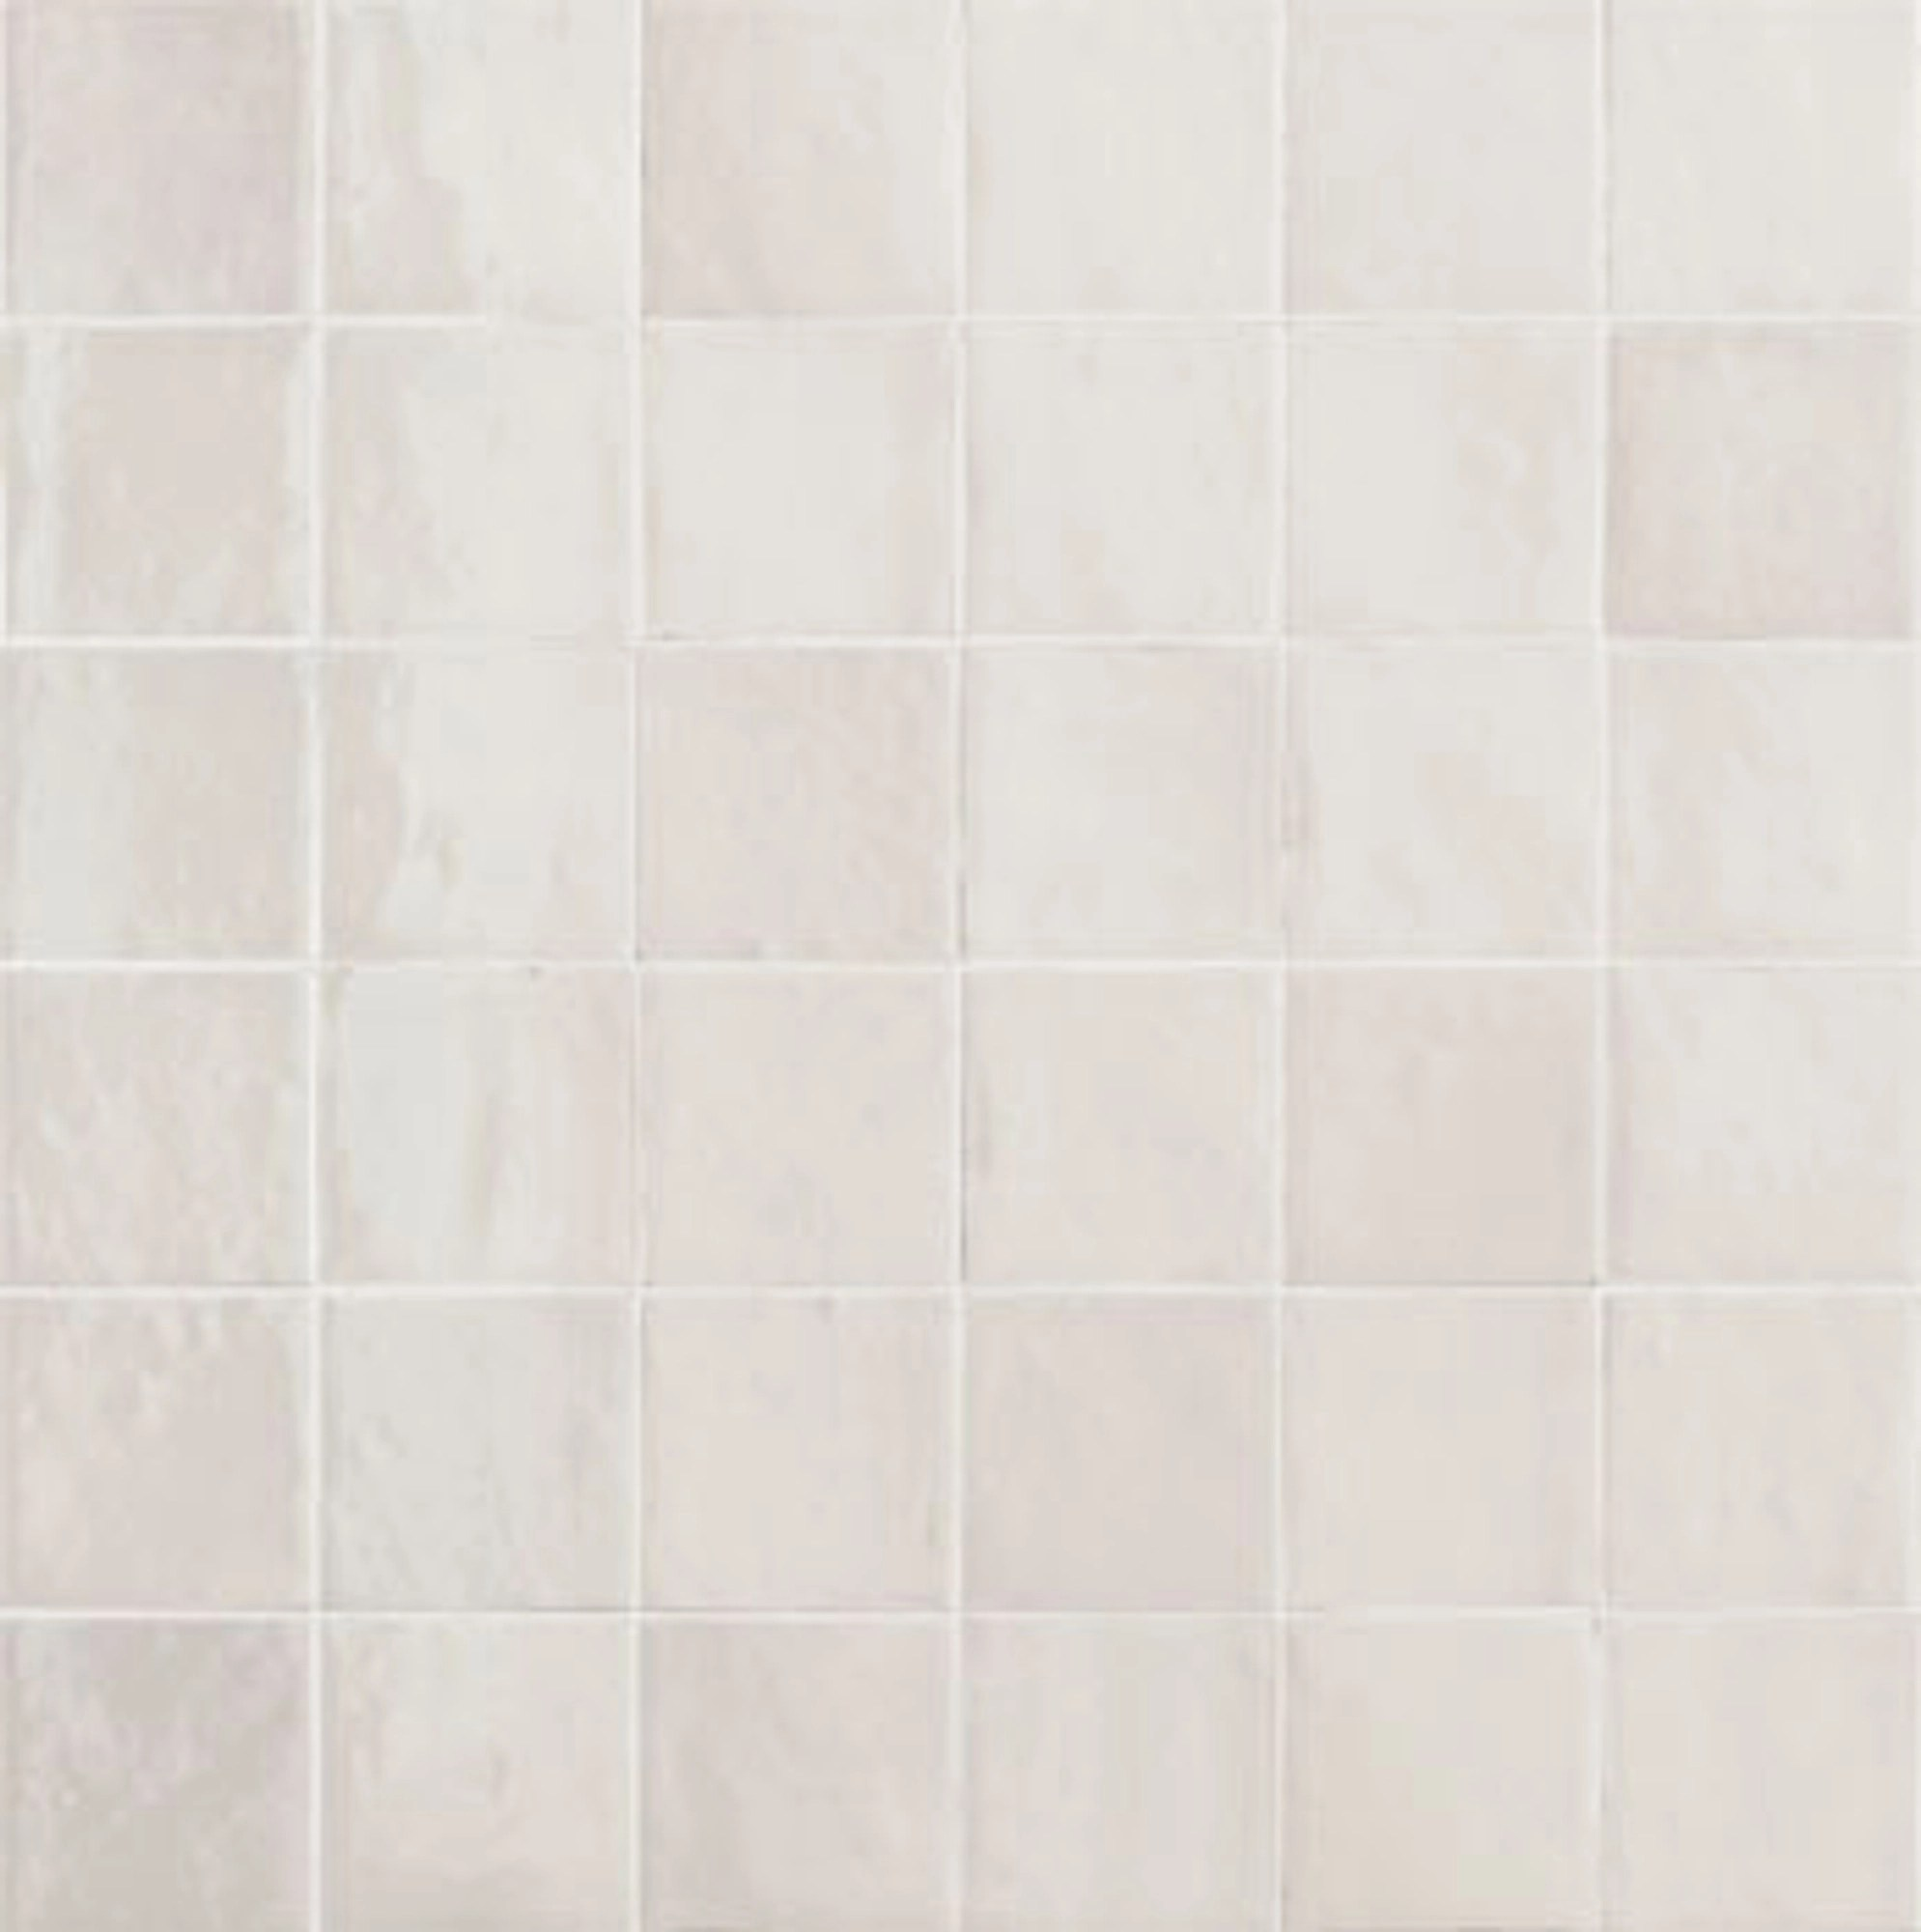 zellige ice white gloss wall tile 10x10cm sold per box